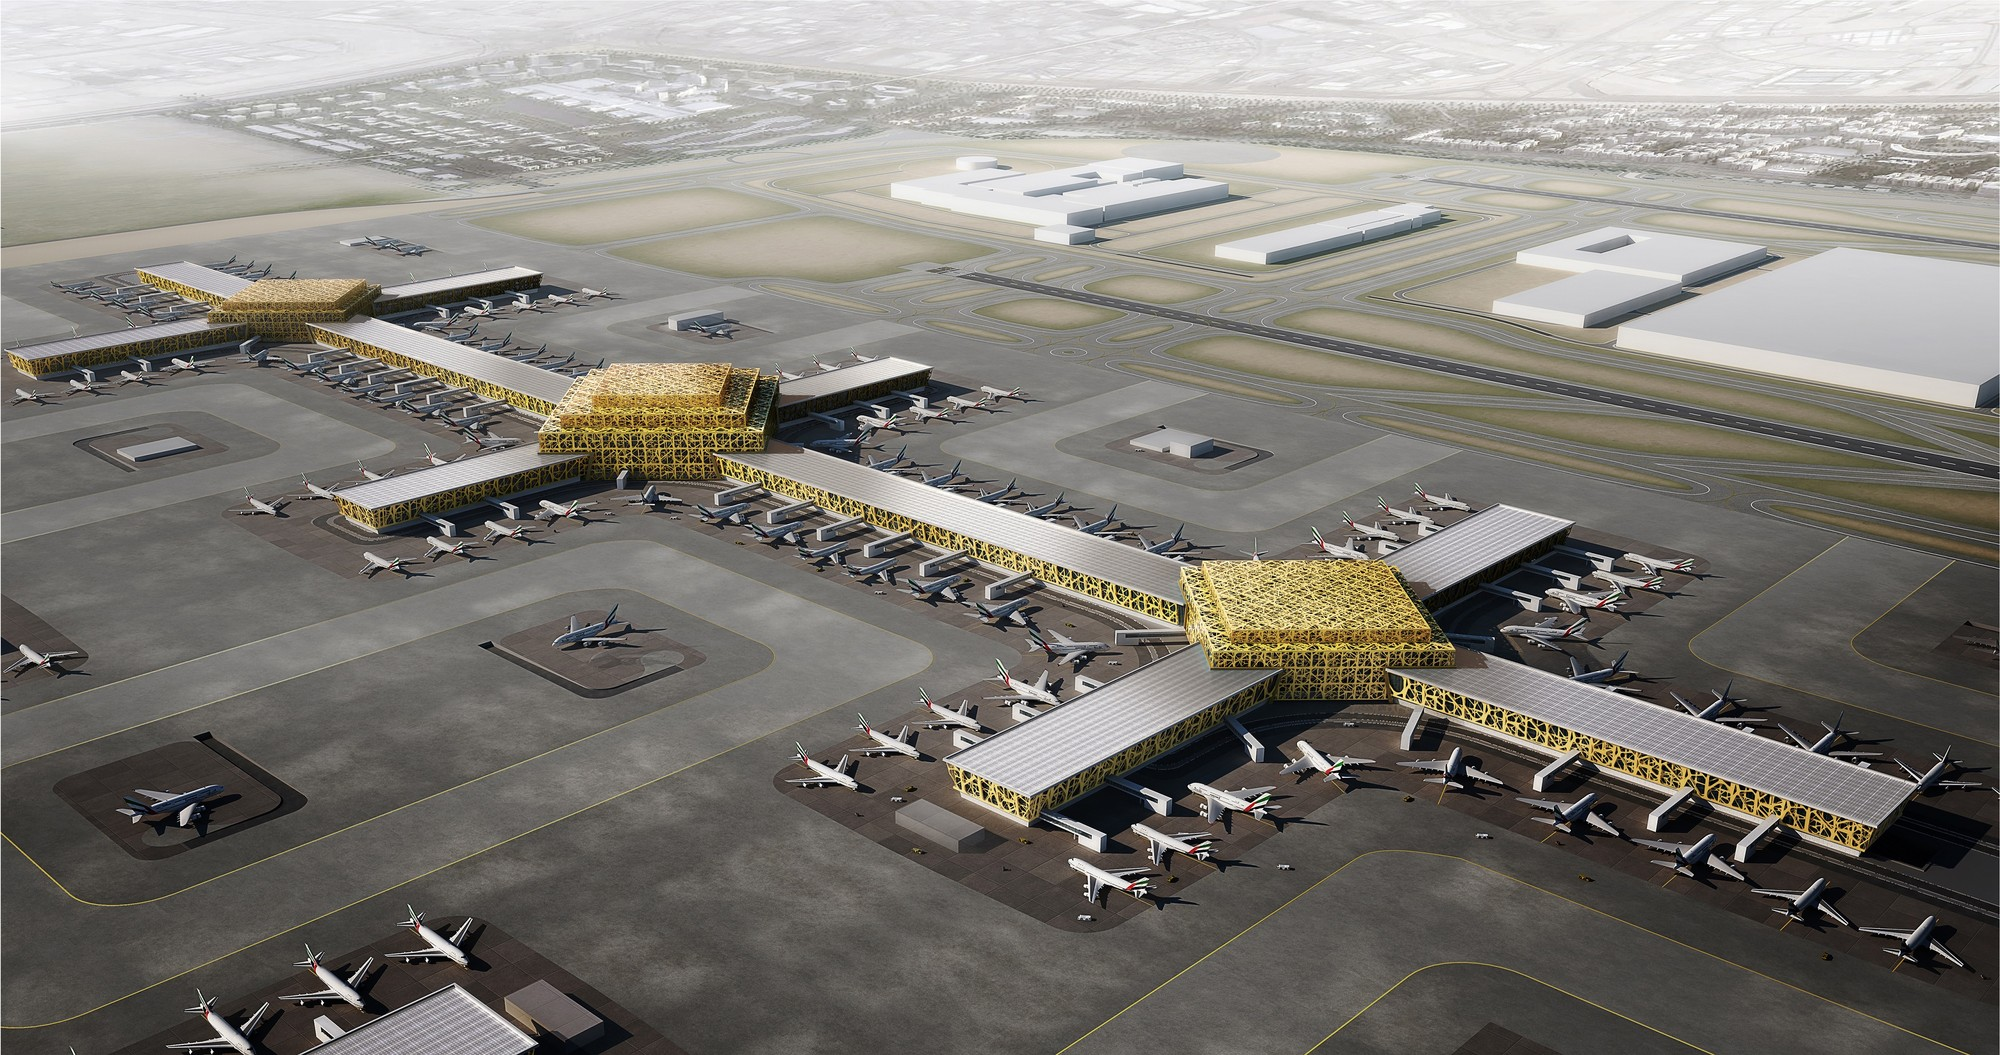 Leslie Jones Architecture to Design International Airport for Dubai World Central, Courtesy of Leslie Jones Architecture